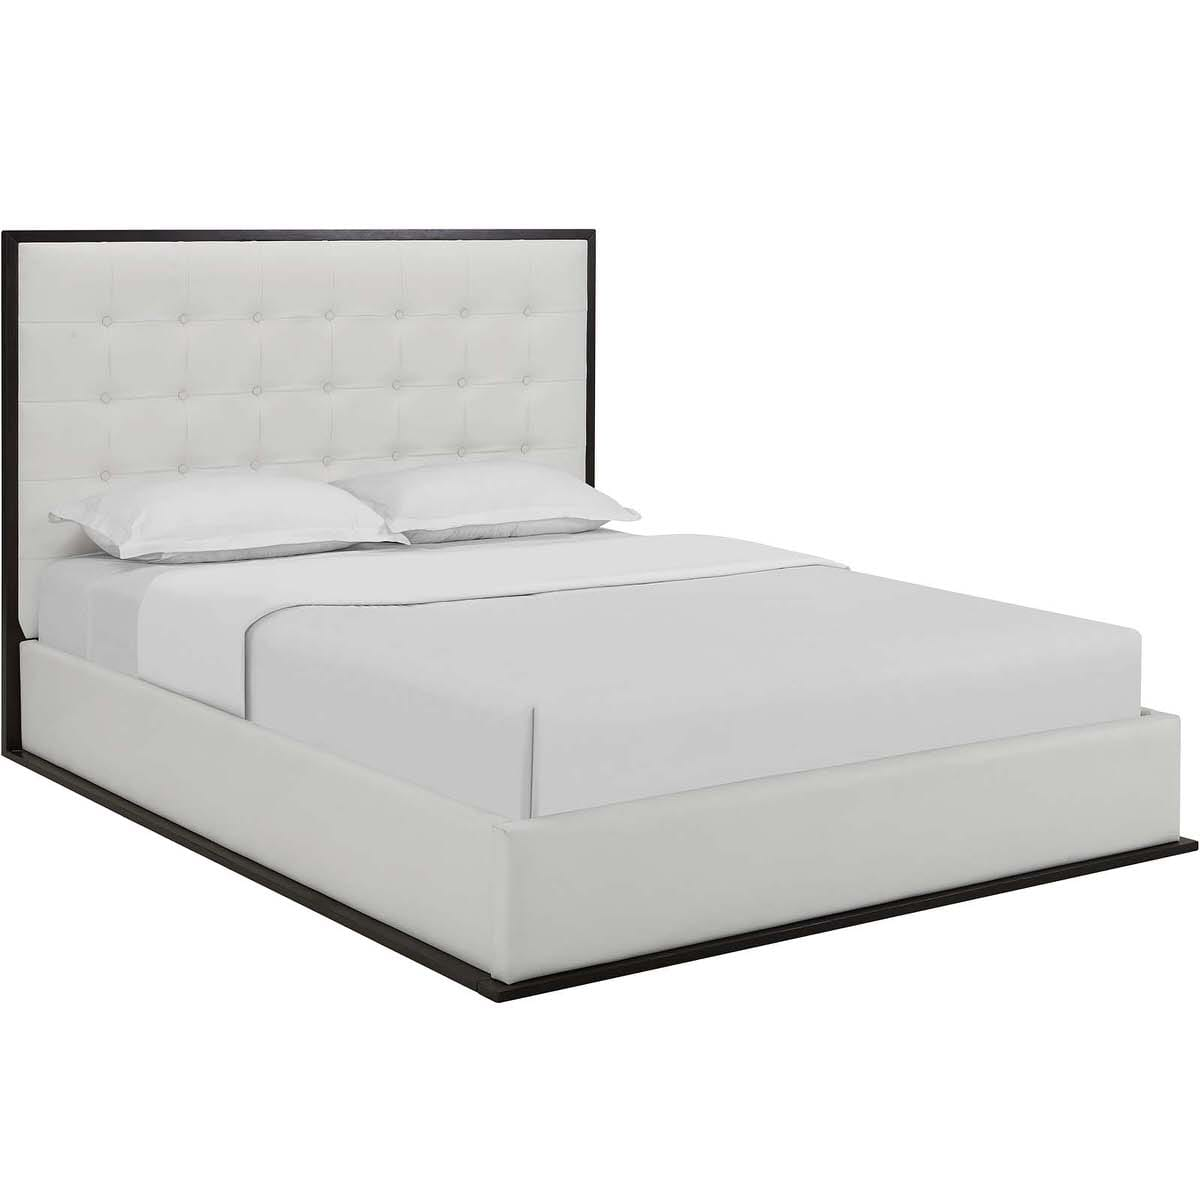 Queen Bed Frame Madeline Queen Vinyl Bed Frame Cappuccino White By Modern Living